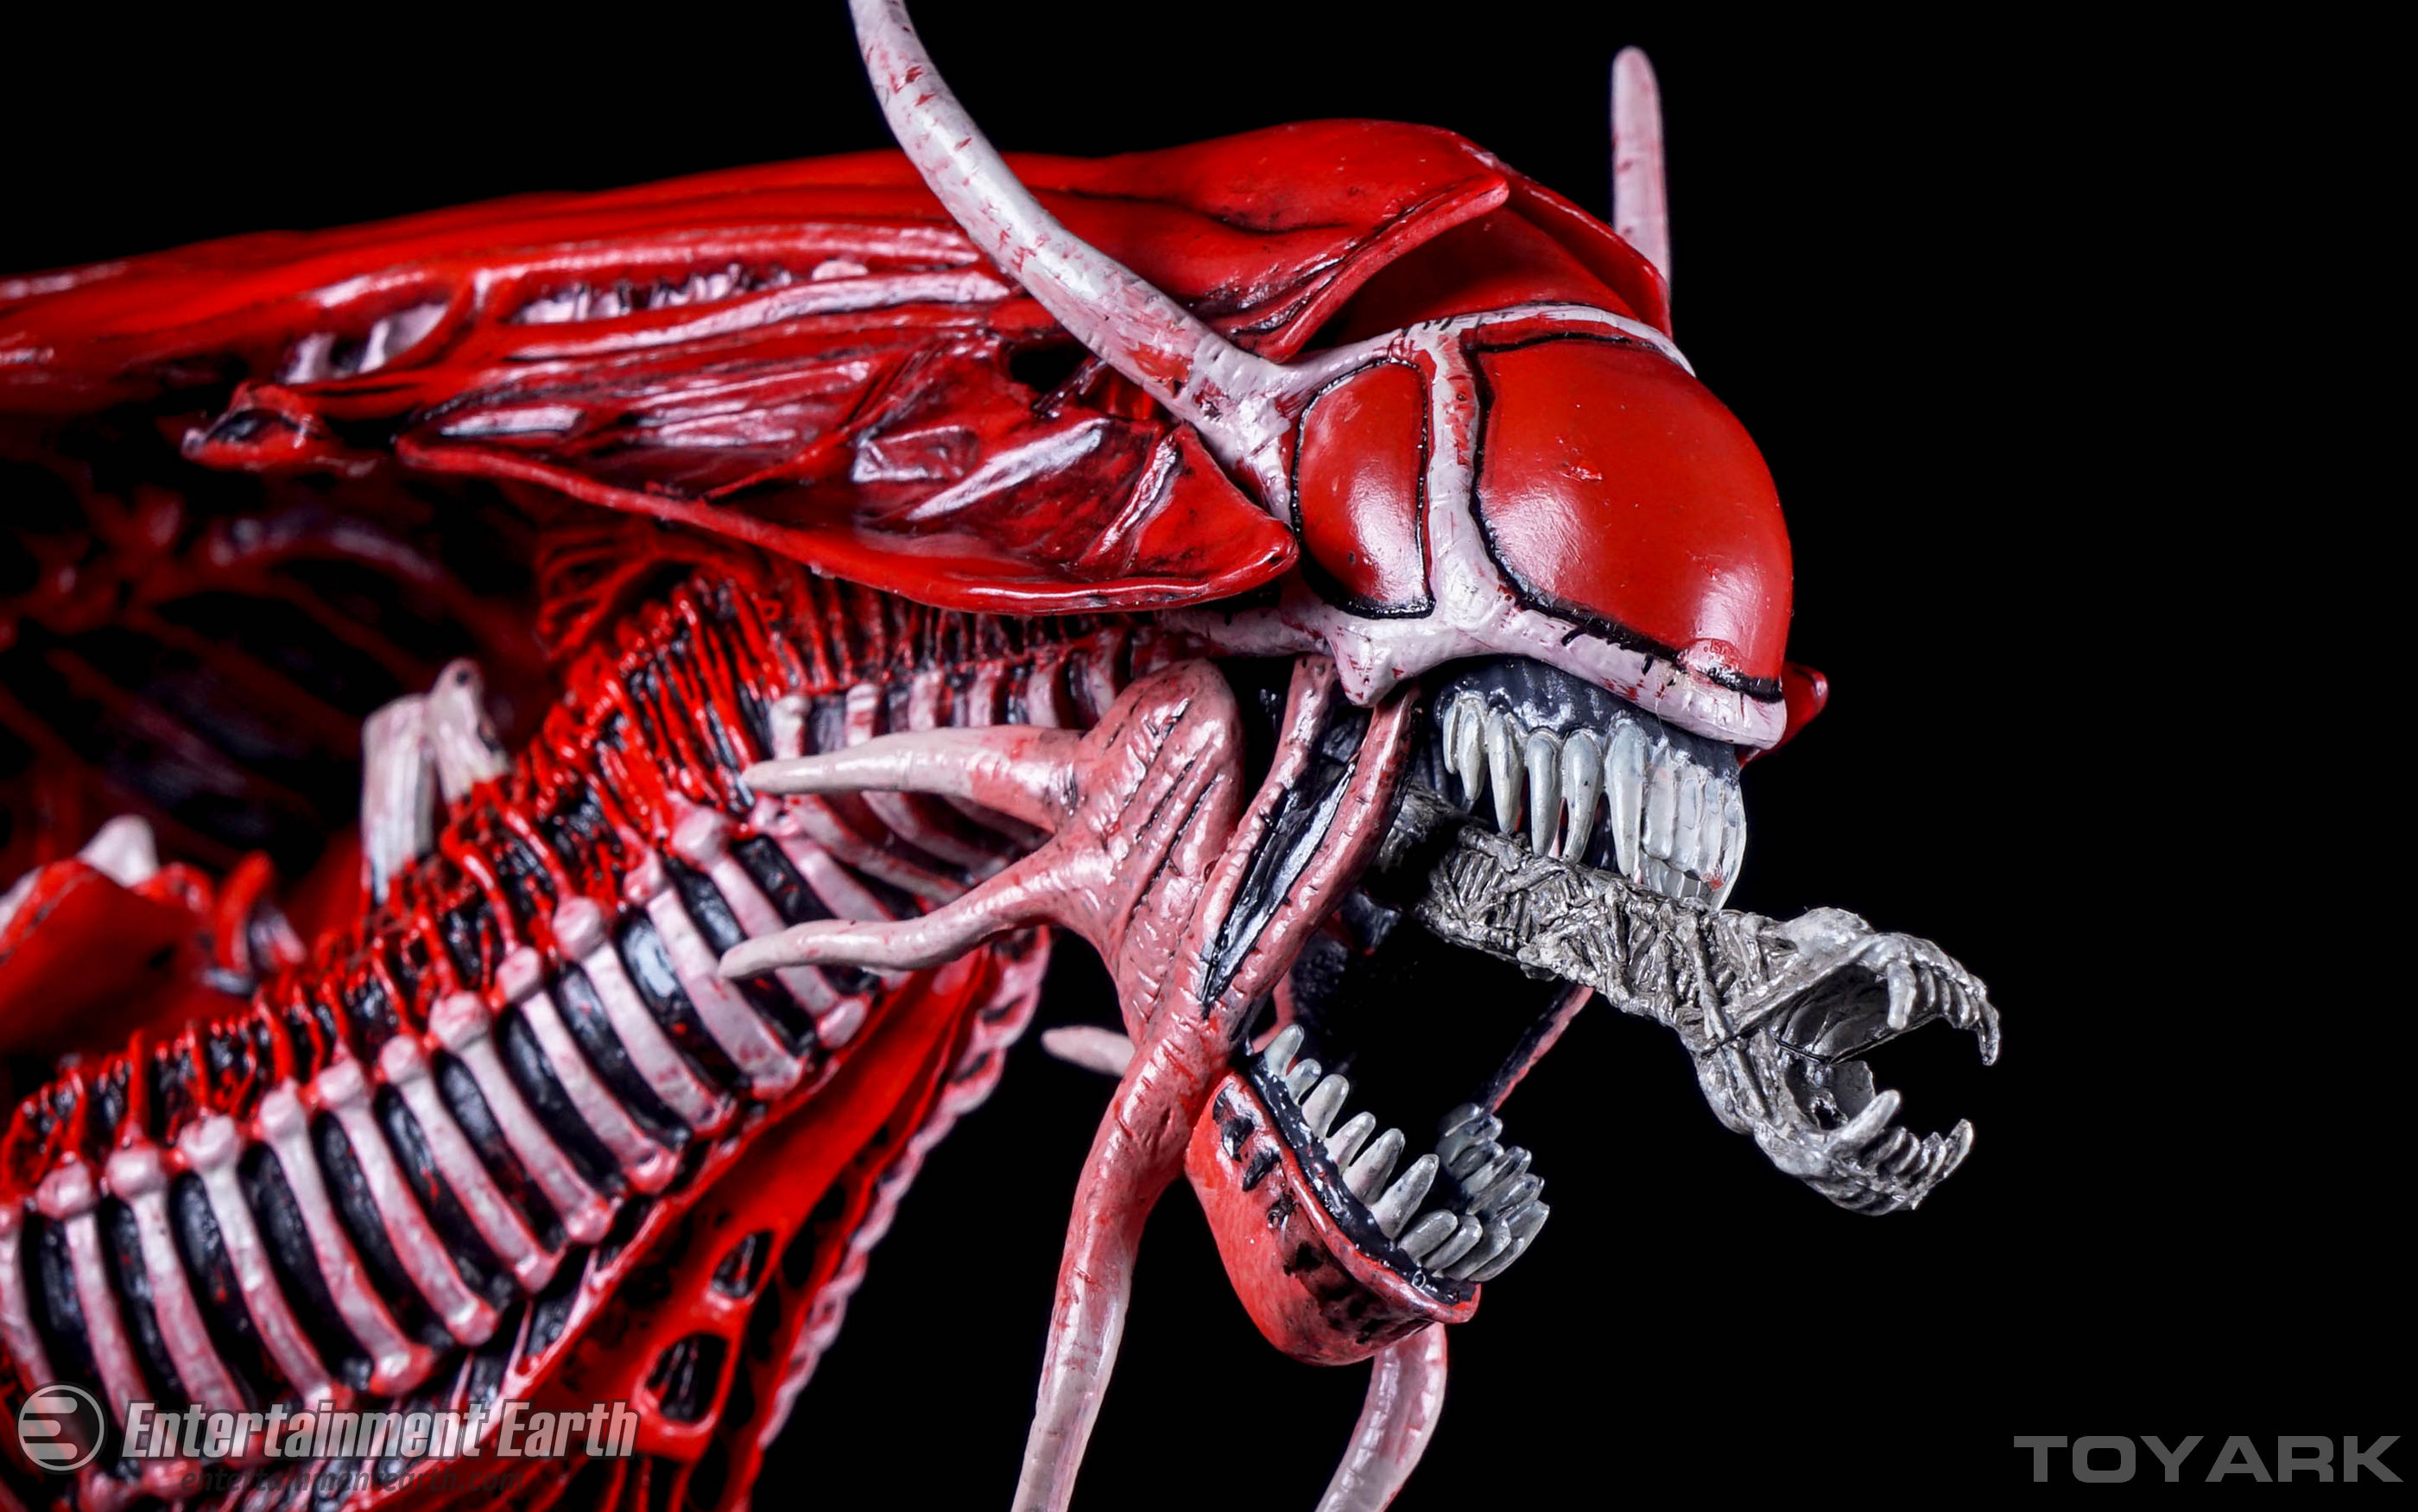 http://news.toyark.com/wp-content/uploads/sites/4/2015/12/NECA-Alien-Red-Queen-019.jpg